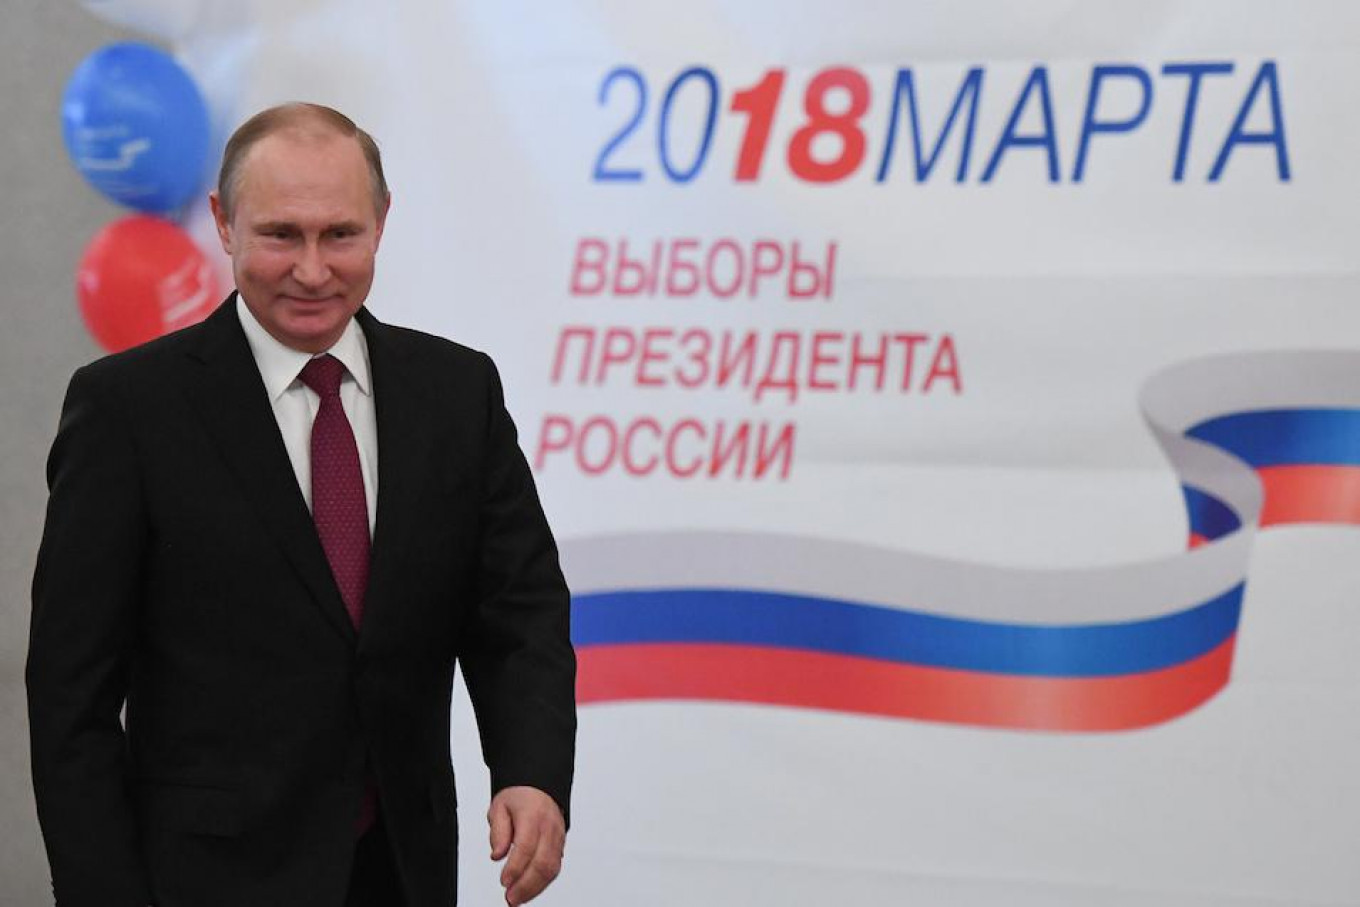 Putin won a landslide re-election victory in March, extending his rule to 2024. Pool / Reuters